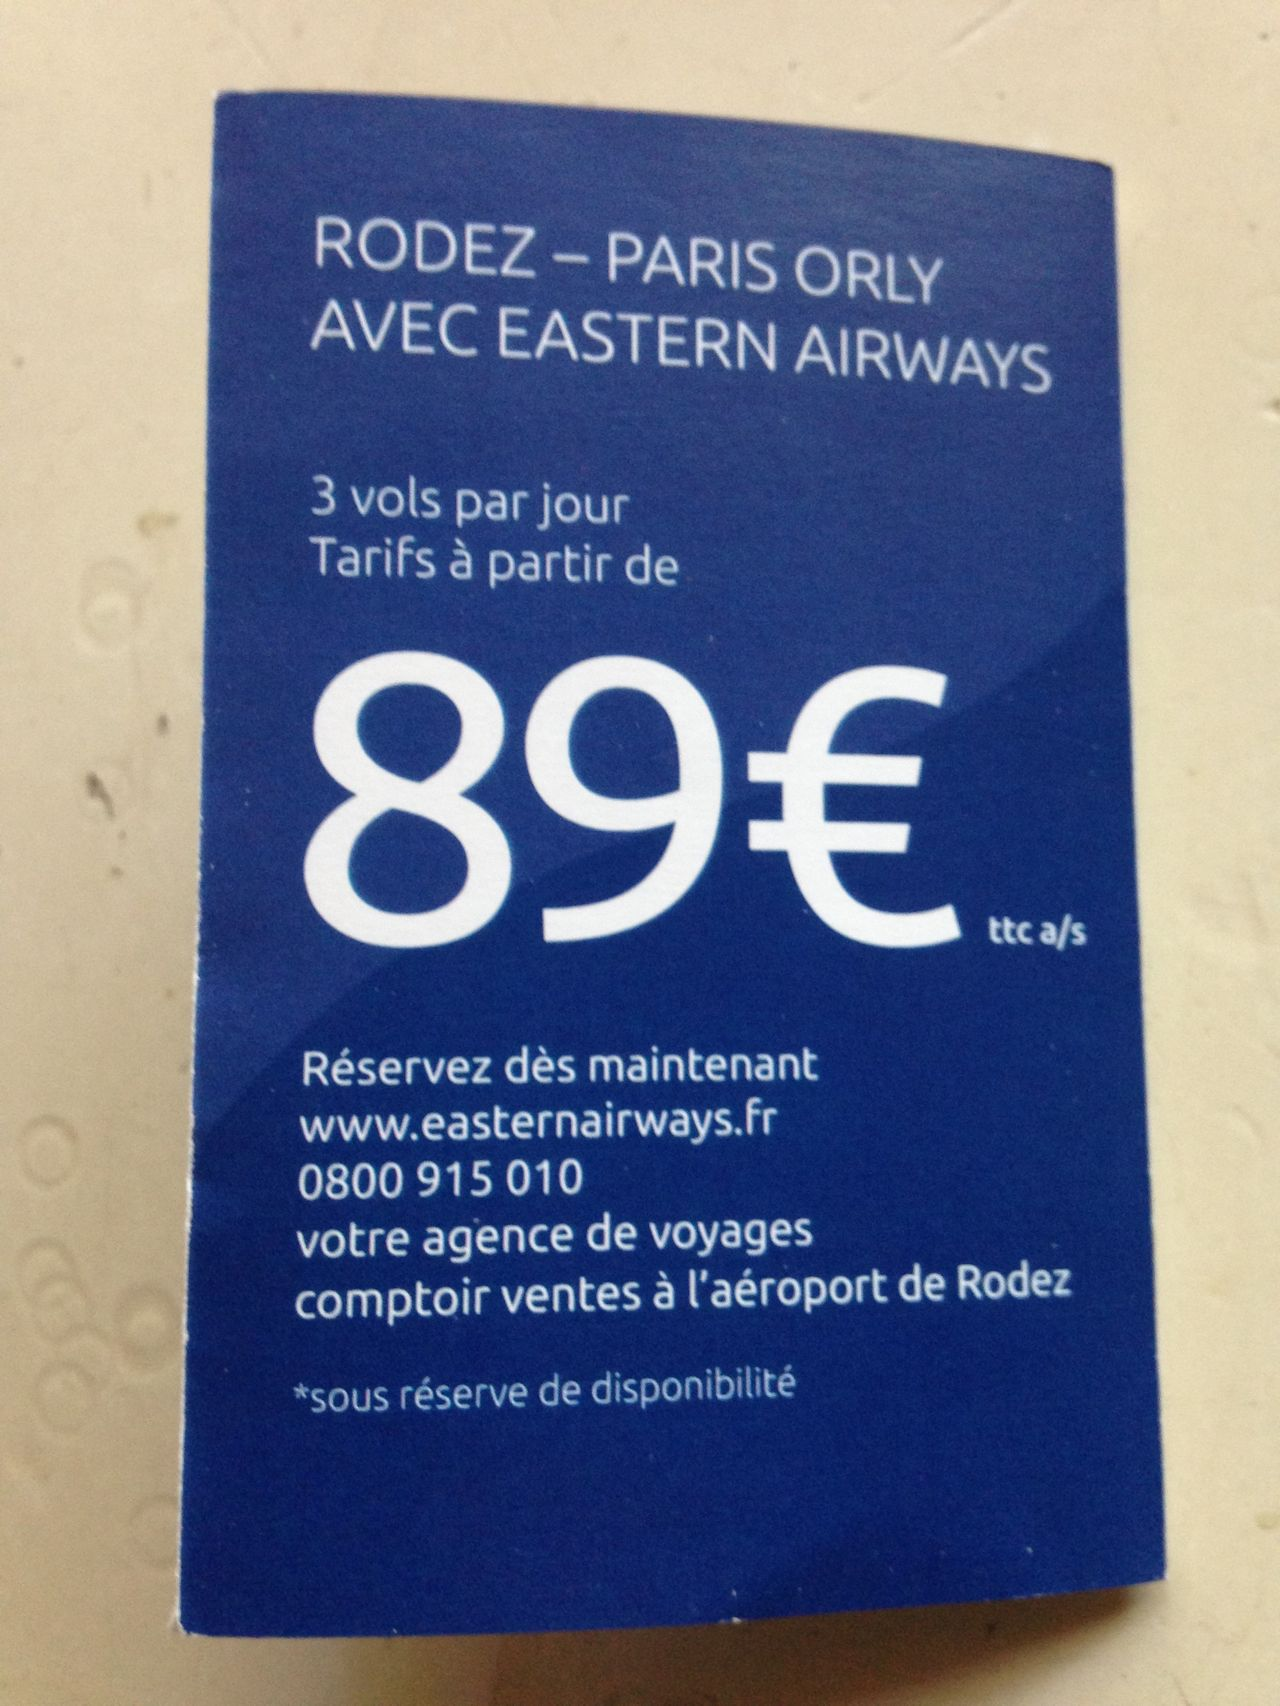 Avis du vol Eastern Airways Paris → Rodez en Economique